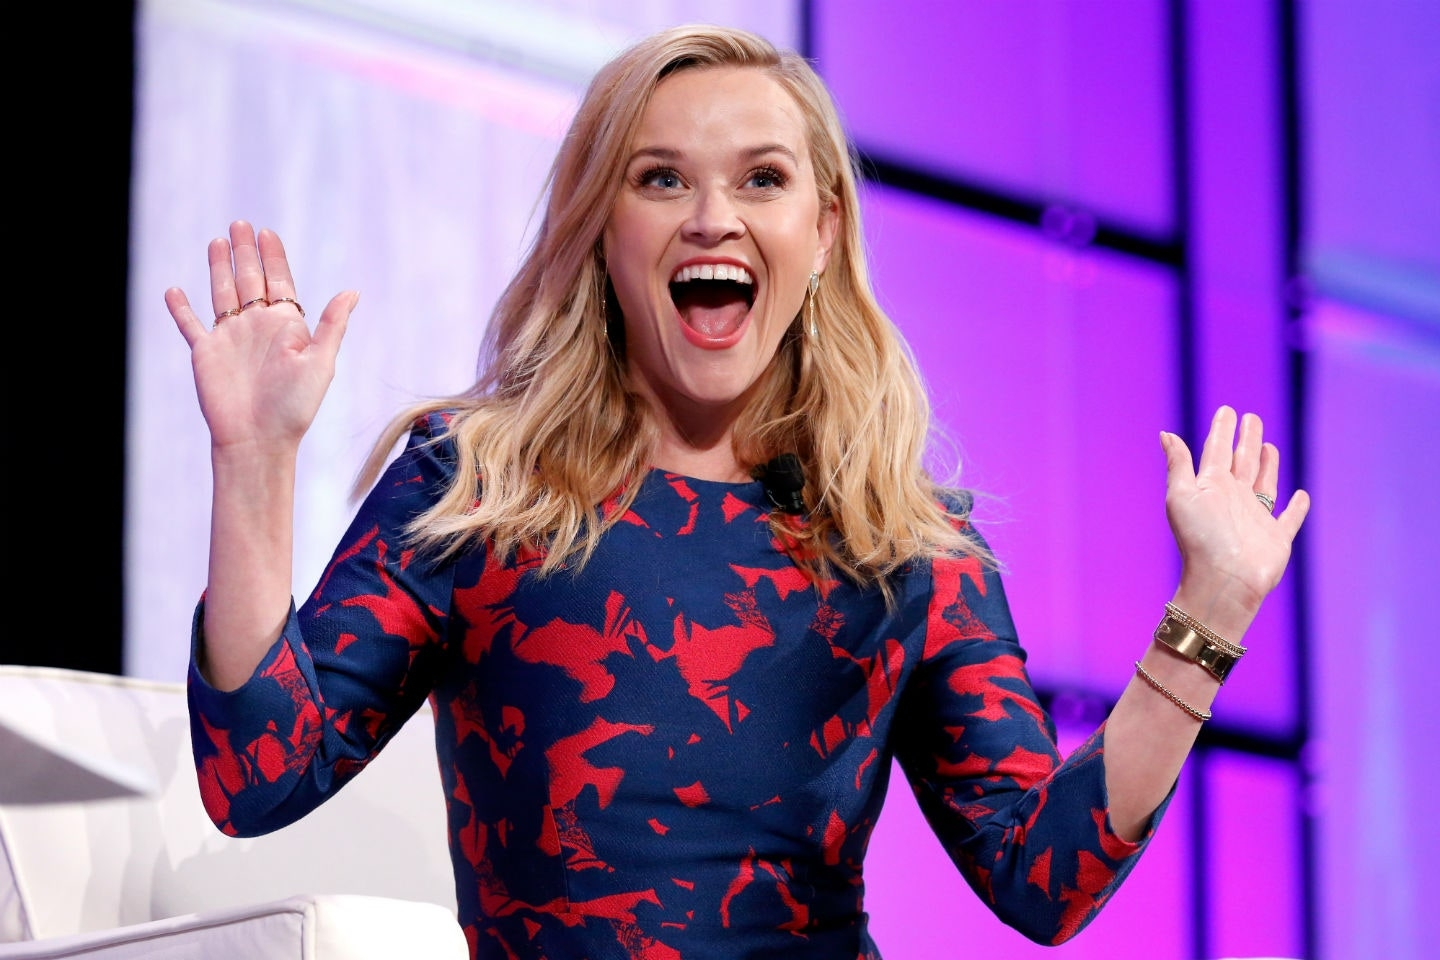 Who is Reese Witherspoon - The World